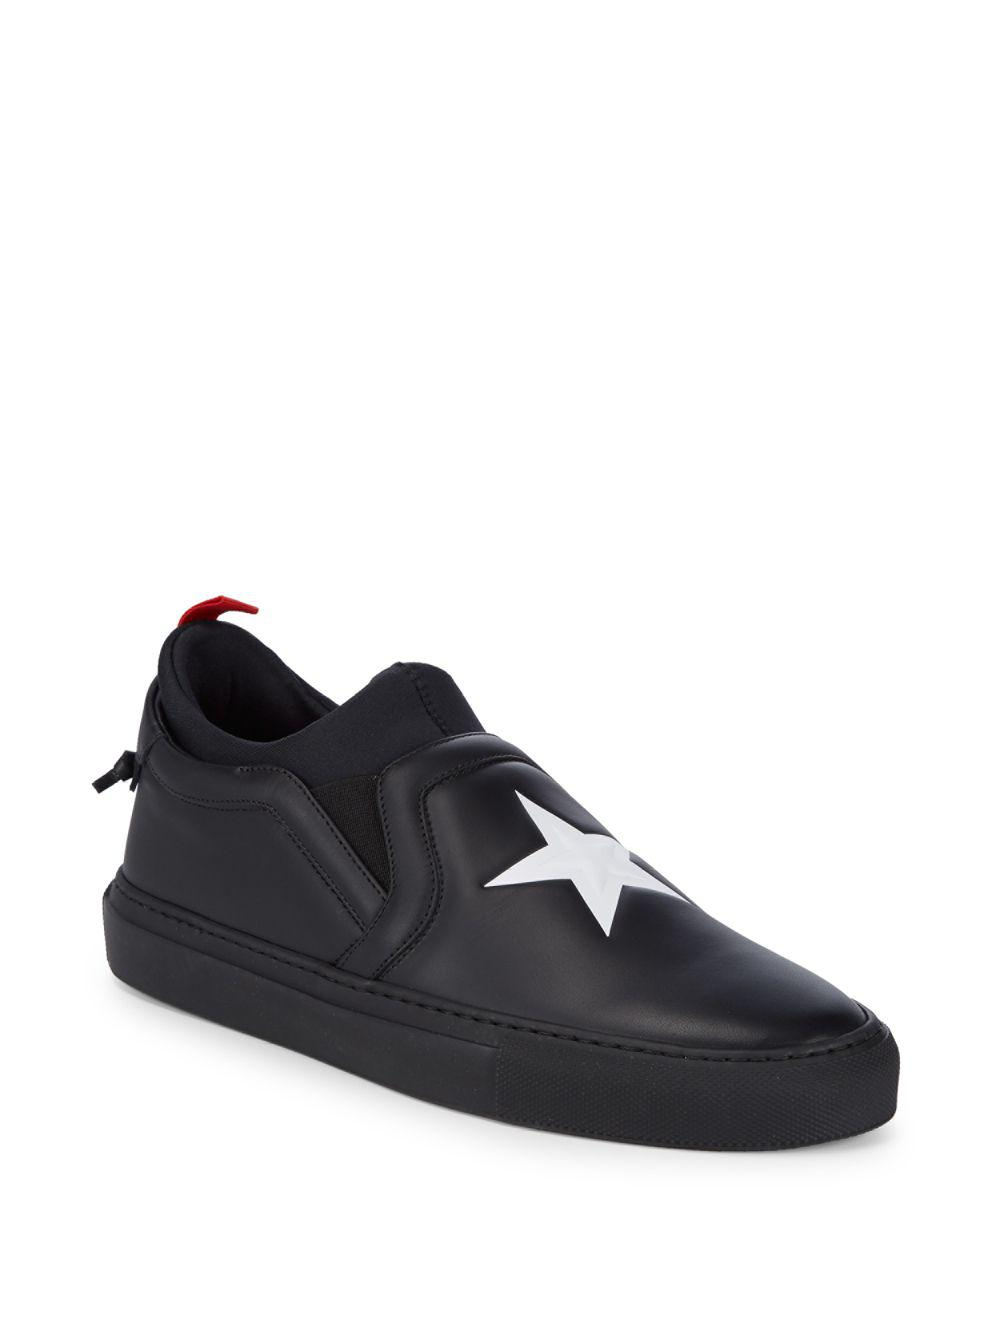 star embossed slip-on sneakers - Black Givenchy GCasMp4UL